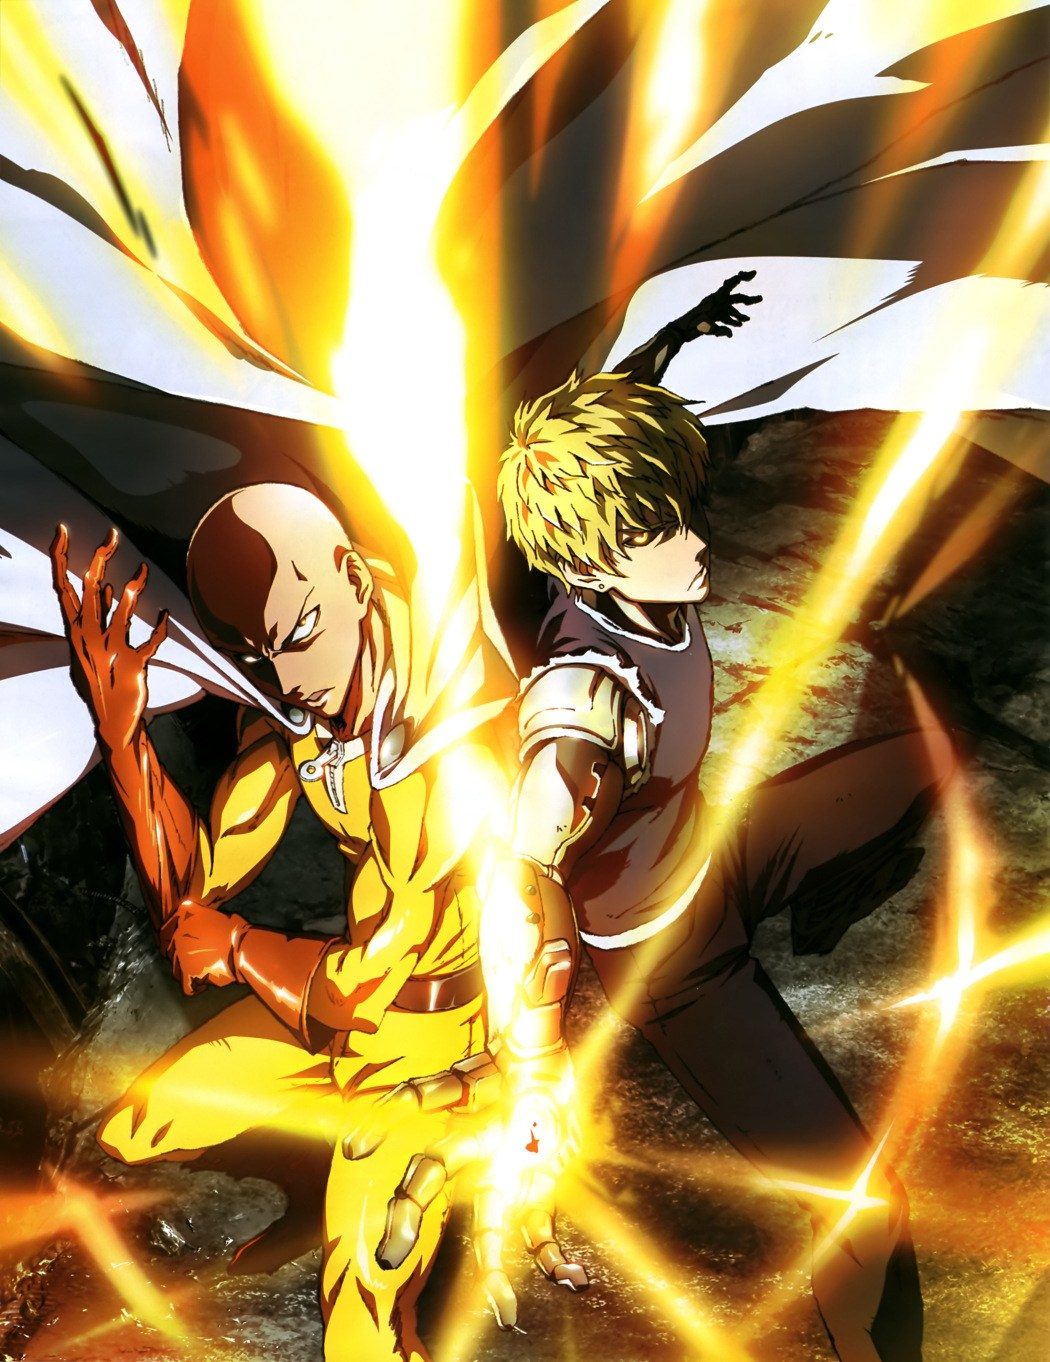 Collected 250 one punch man wallpapers and background picture for desktop & mobile device. One-Punch Man Wallpapers High Quality | Download Free